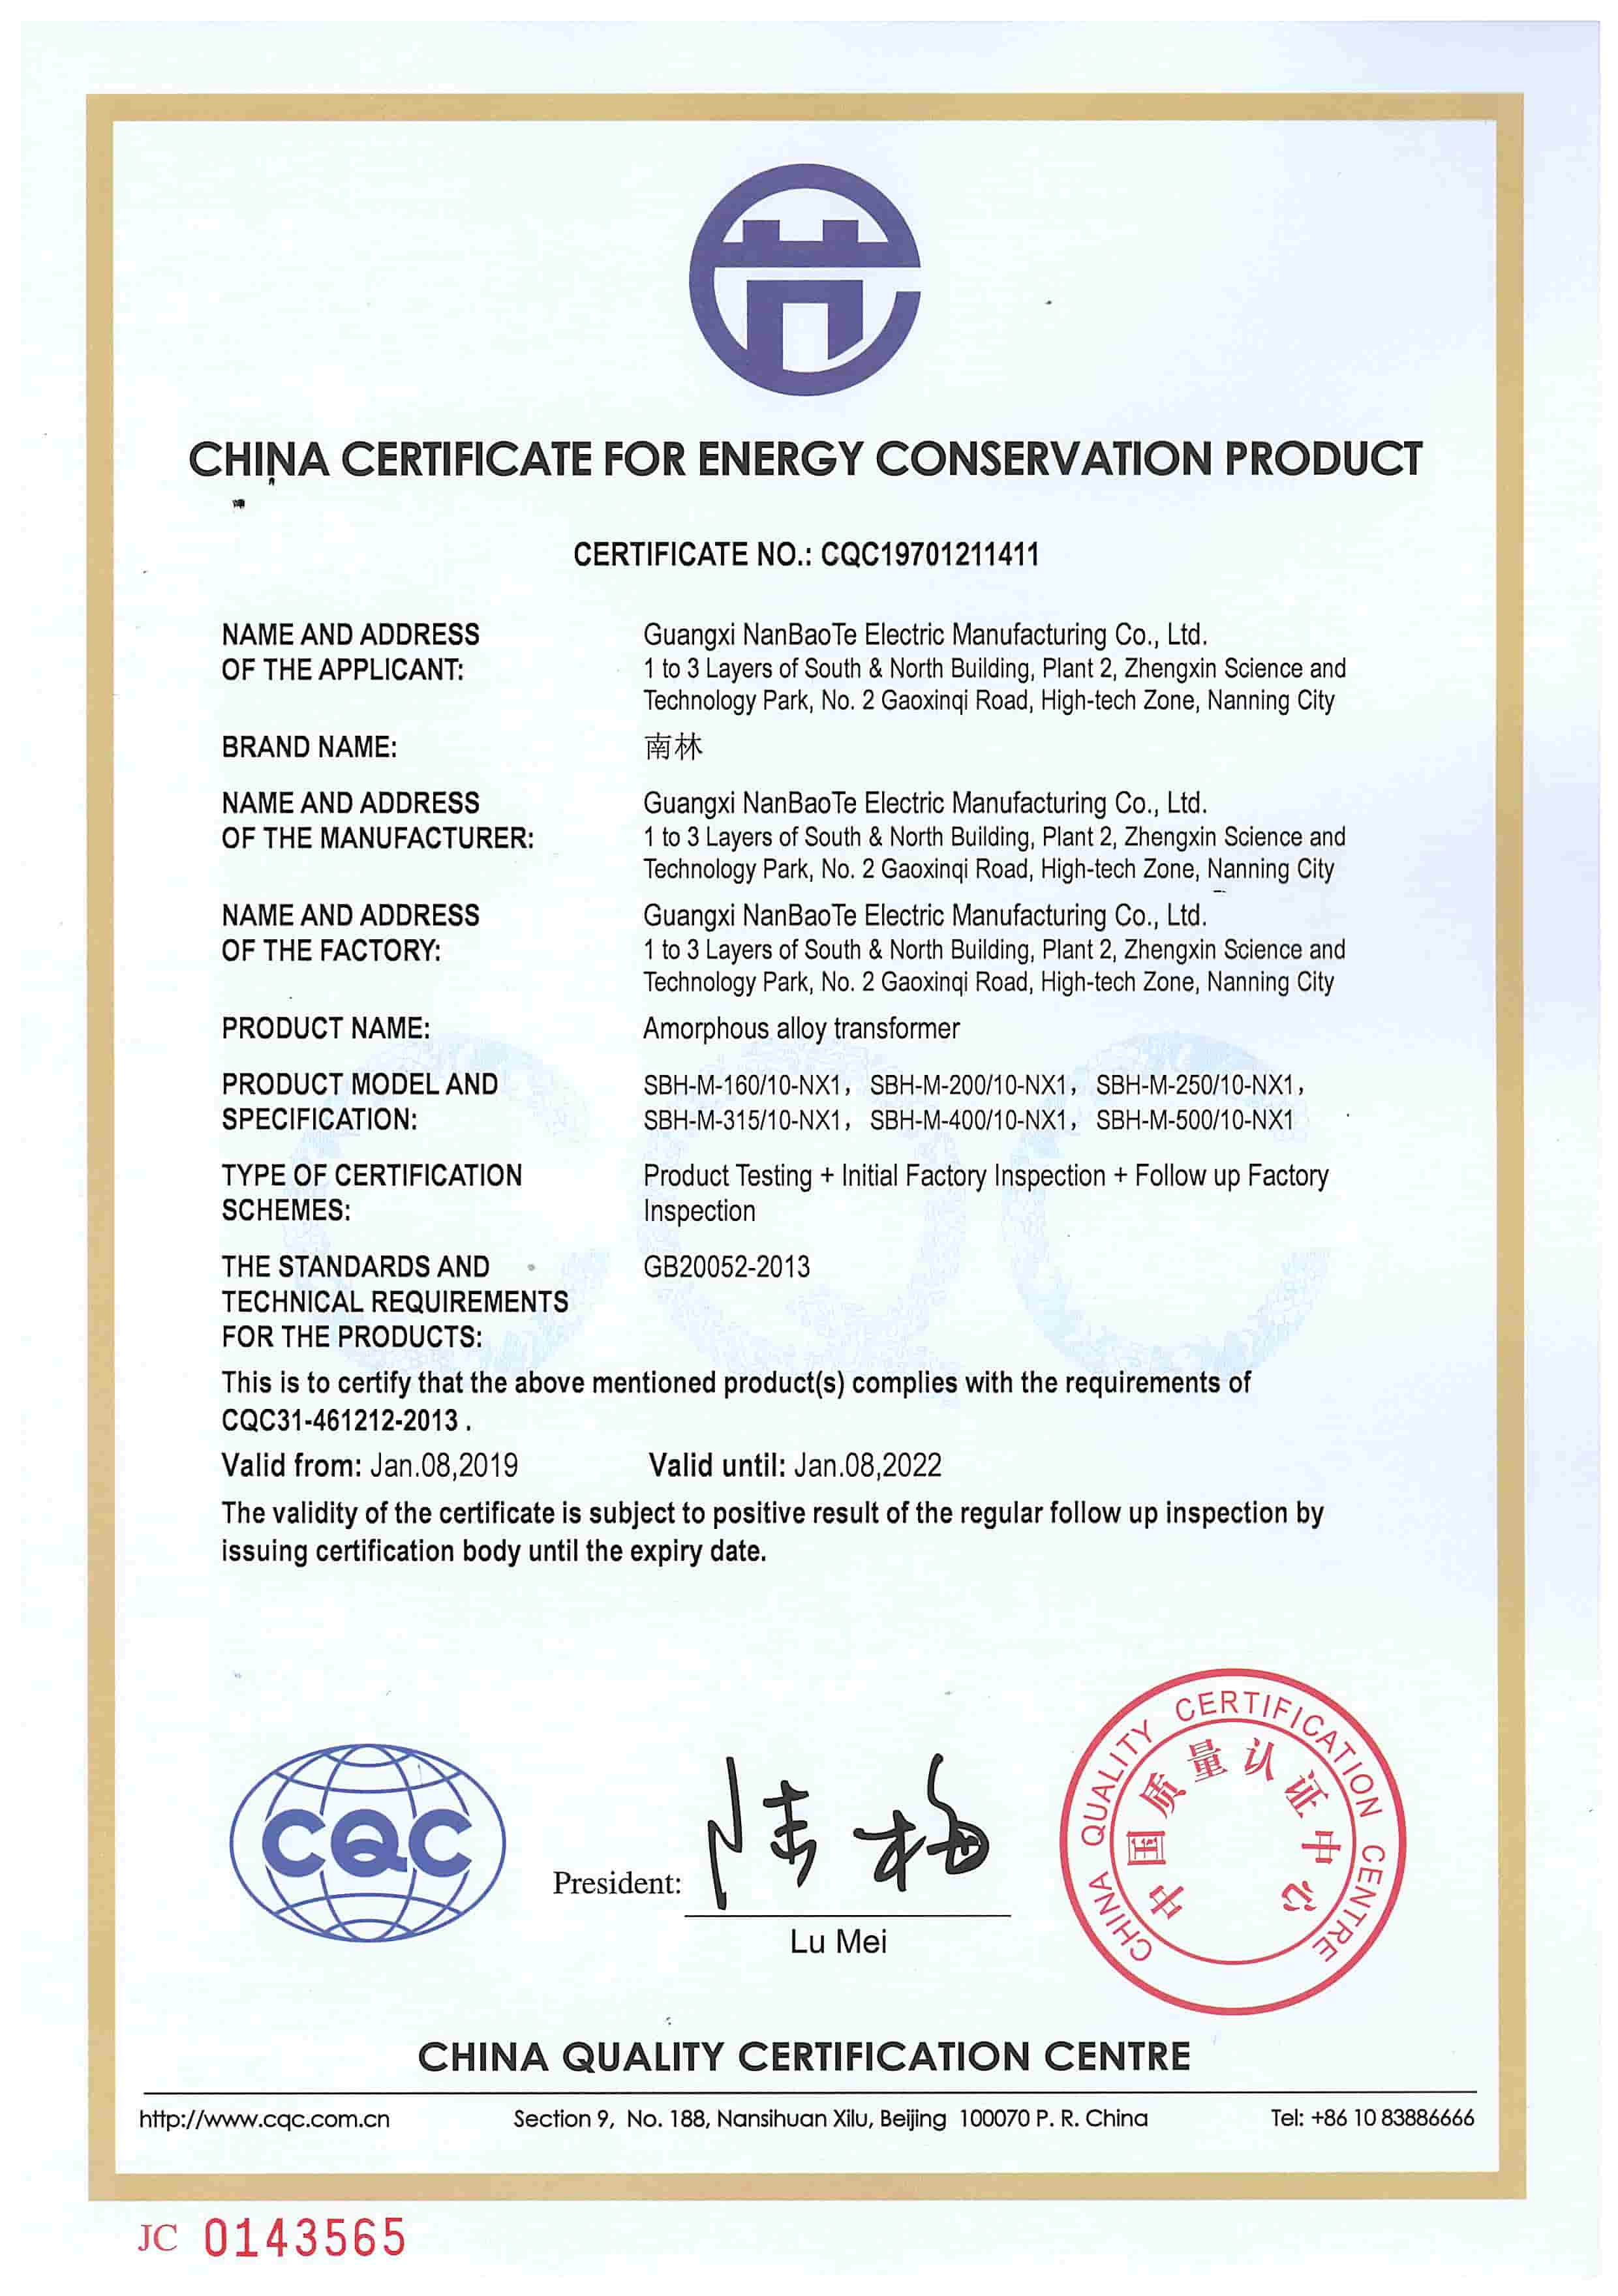 Amorphous Alloy Transformer Energy Conservation Products Certificate